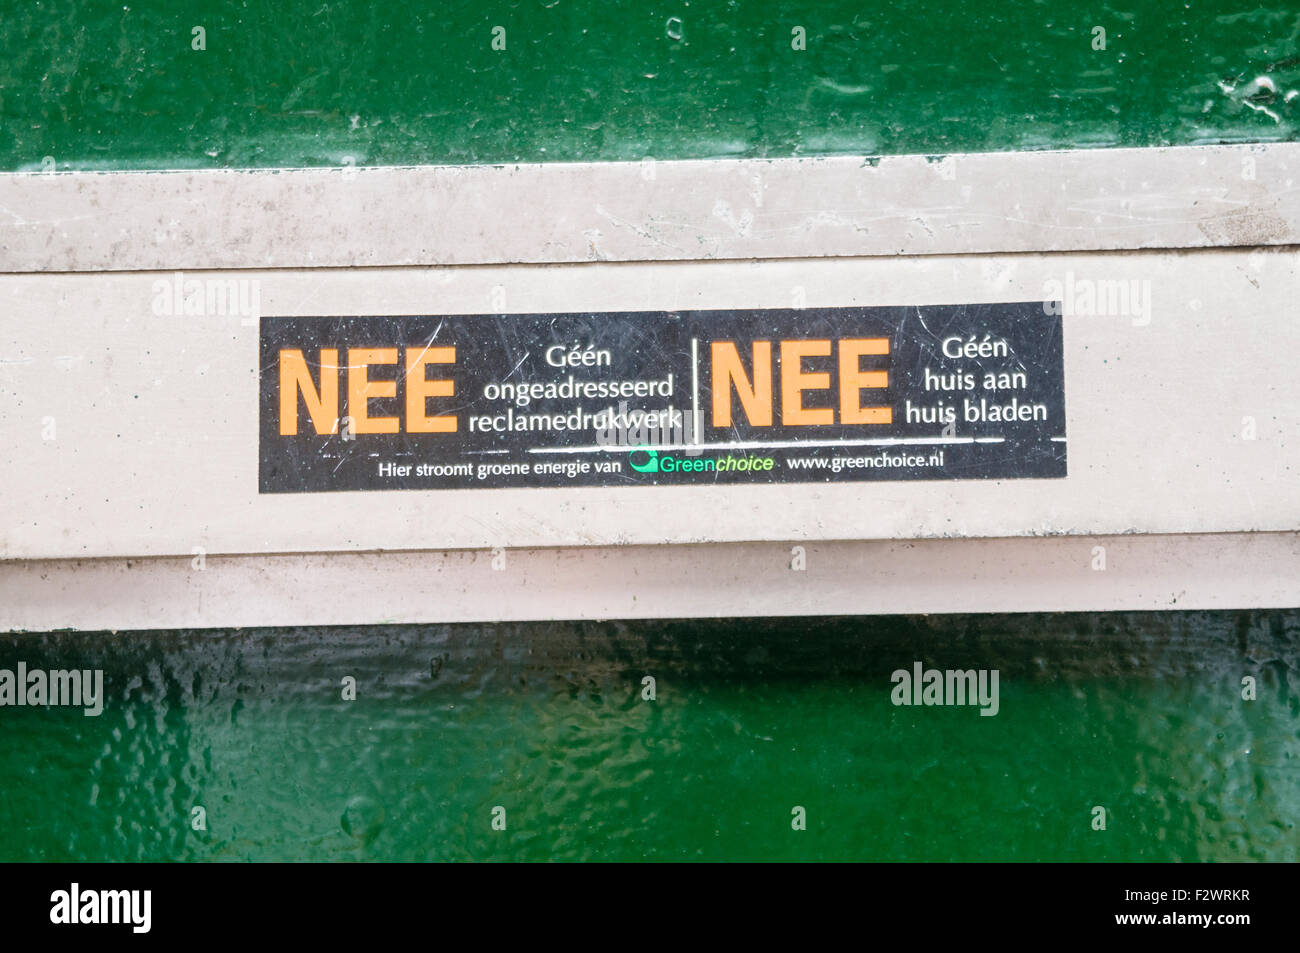 Sign on a letterbox in Amsterdam opting out of junk mail. - Stock Image